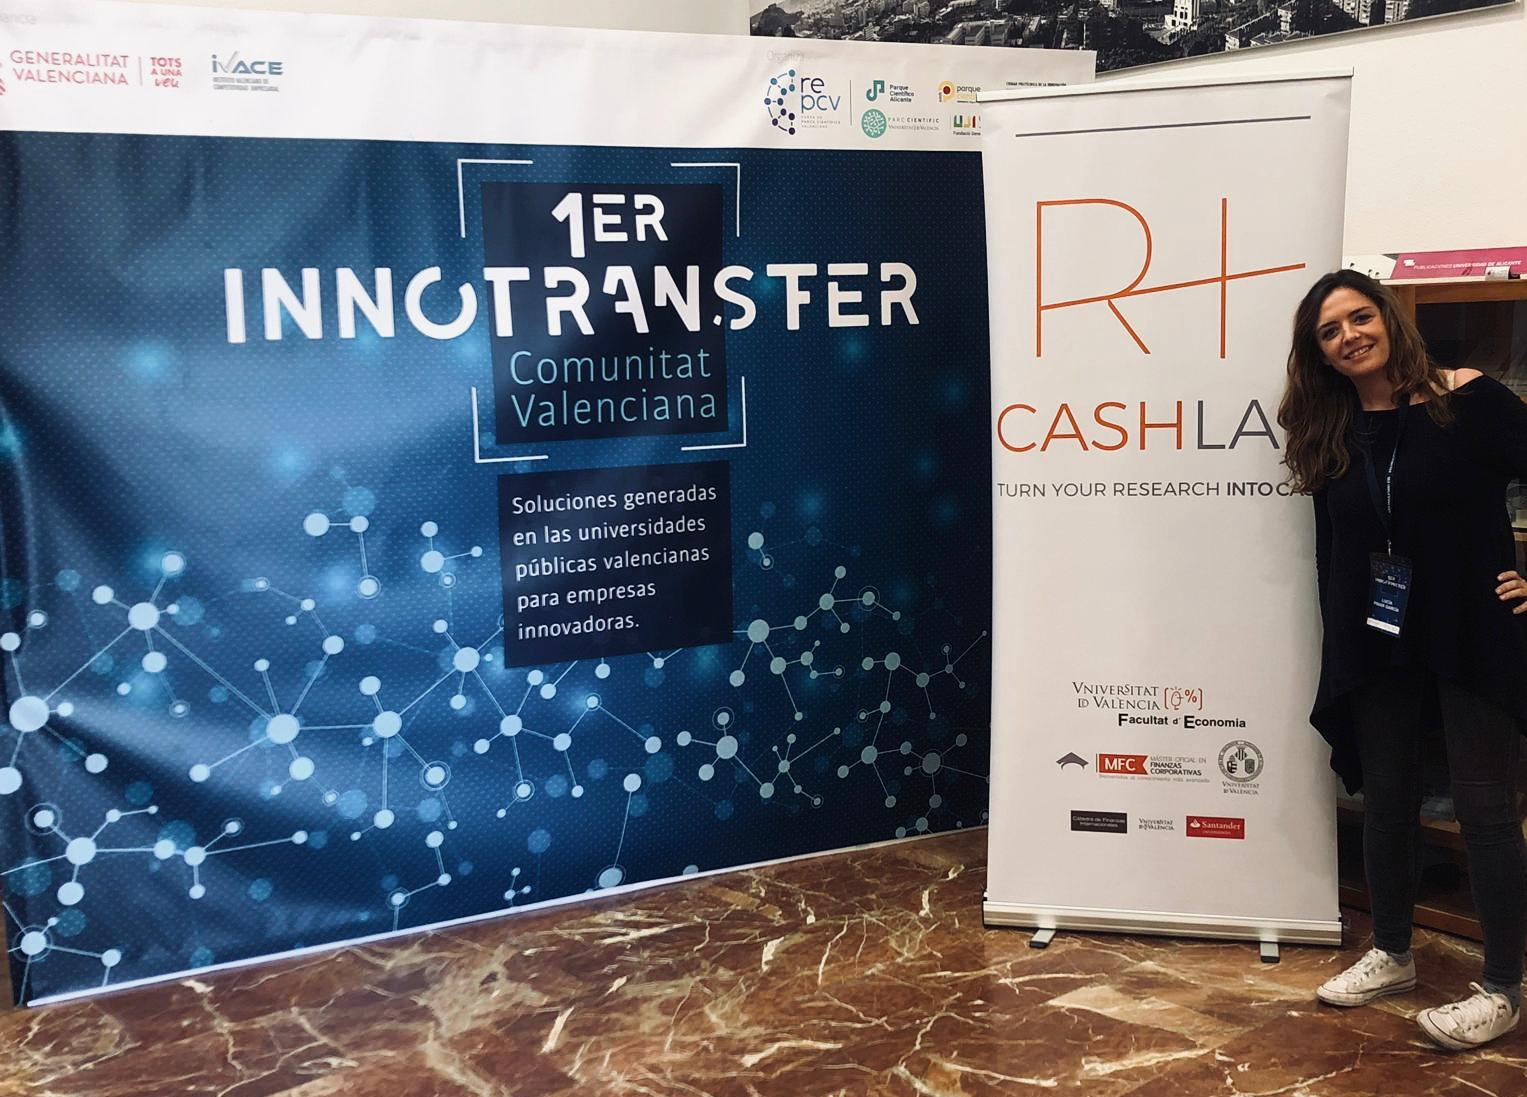 R+Cash Lab participa en INNOTRANSFER 2019